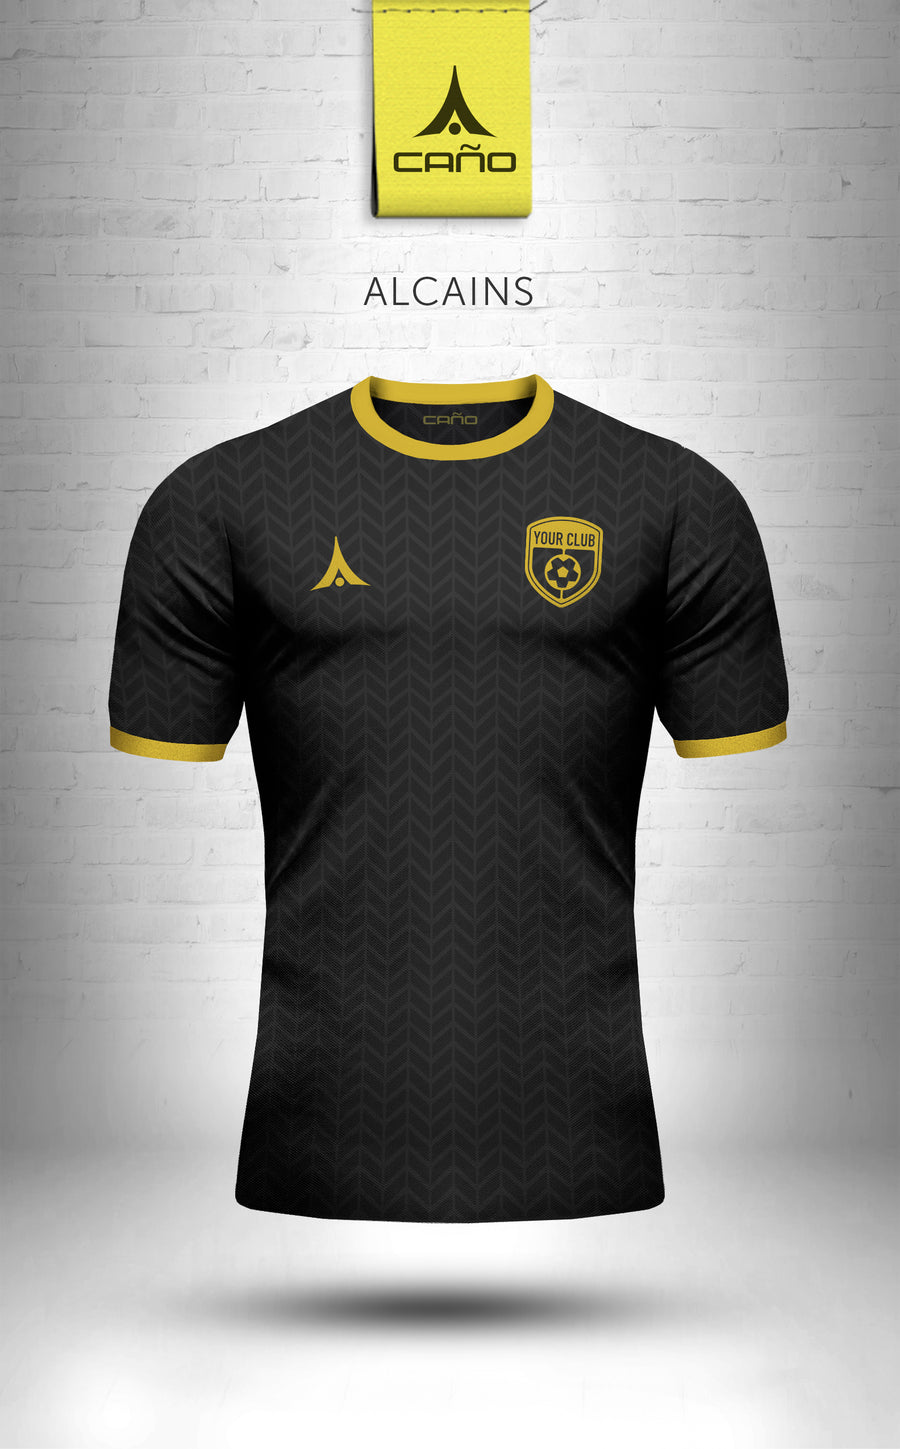 Alcains in black/gold